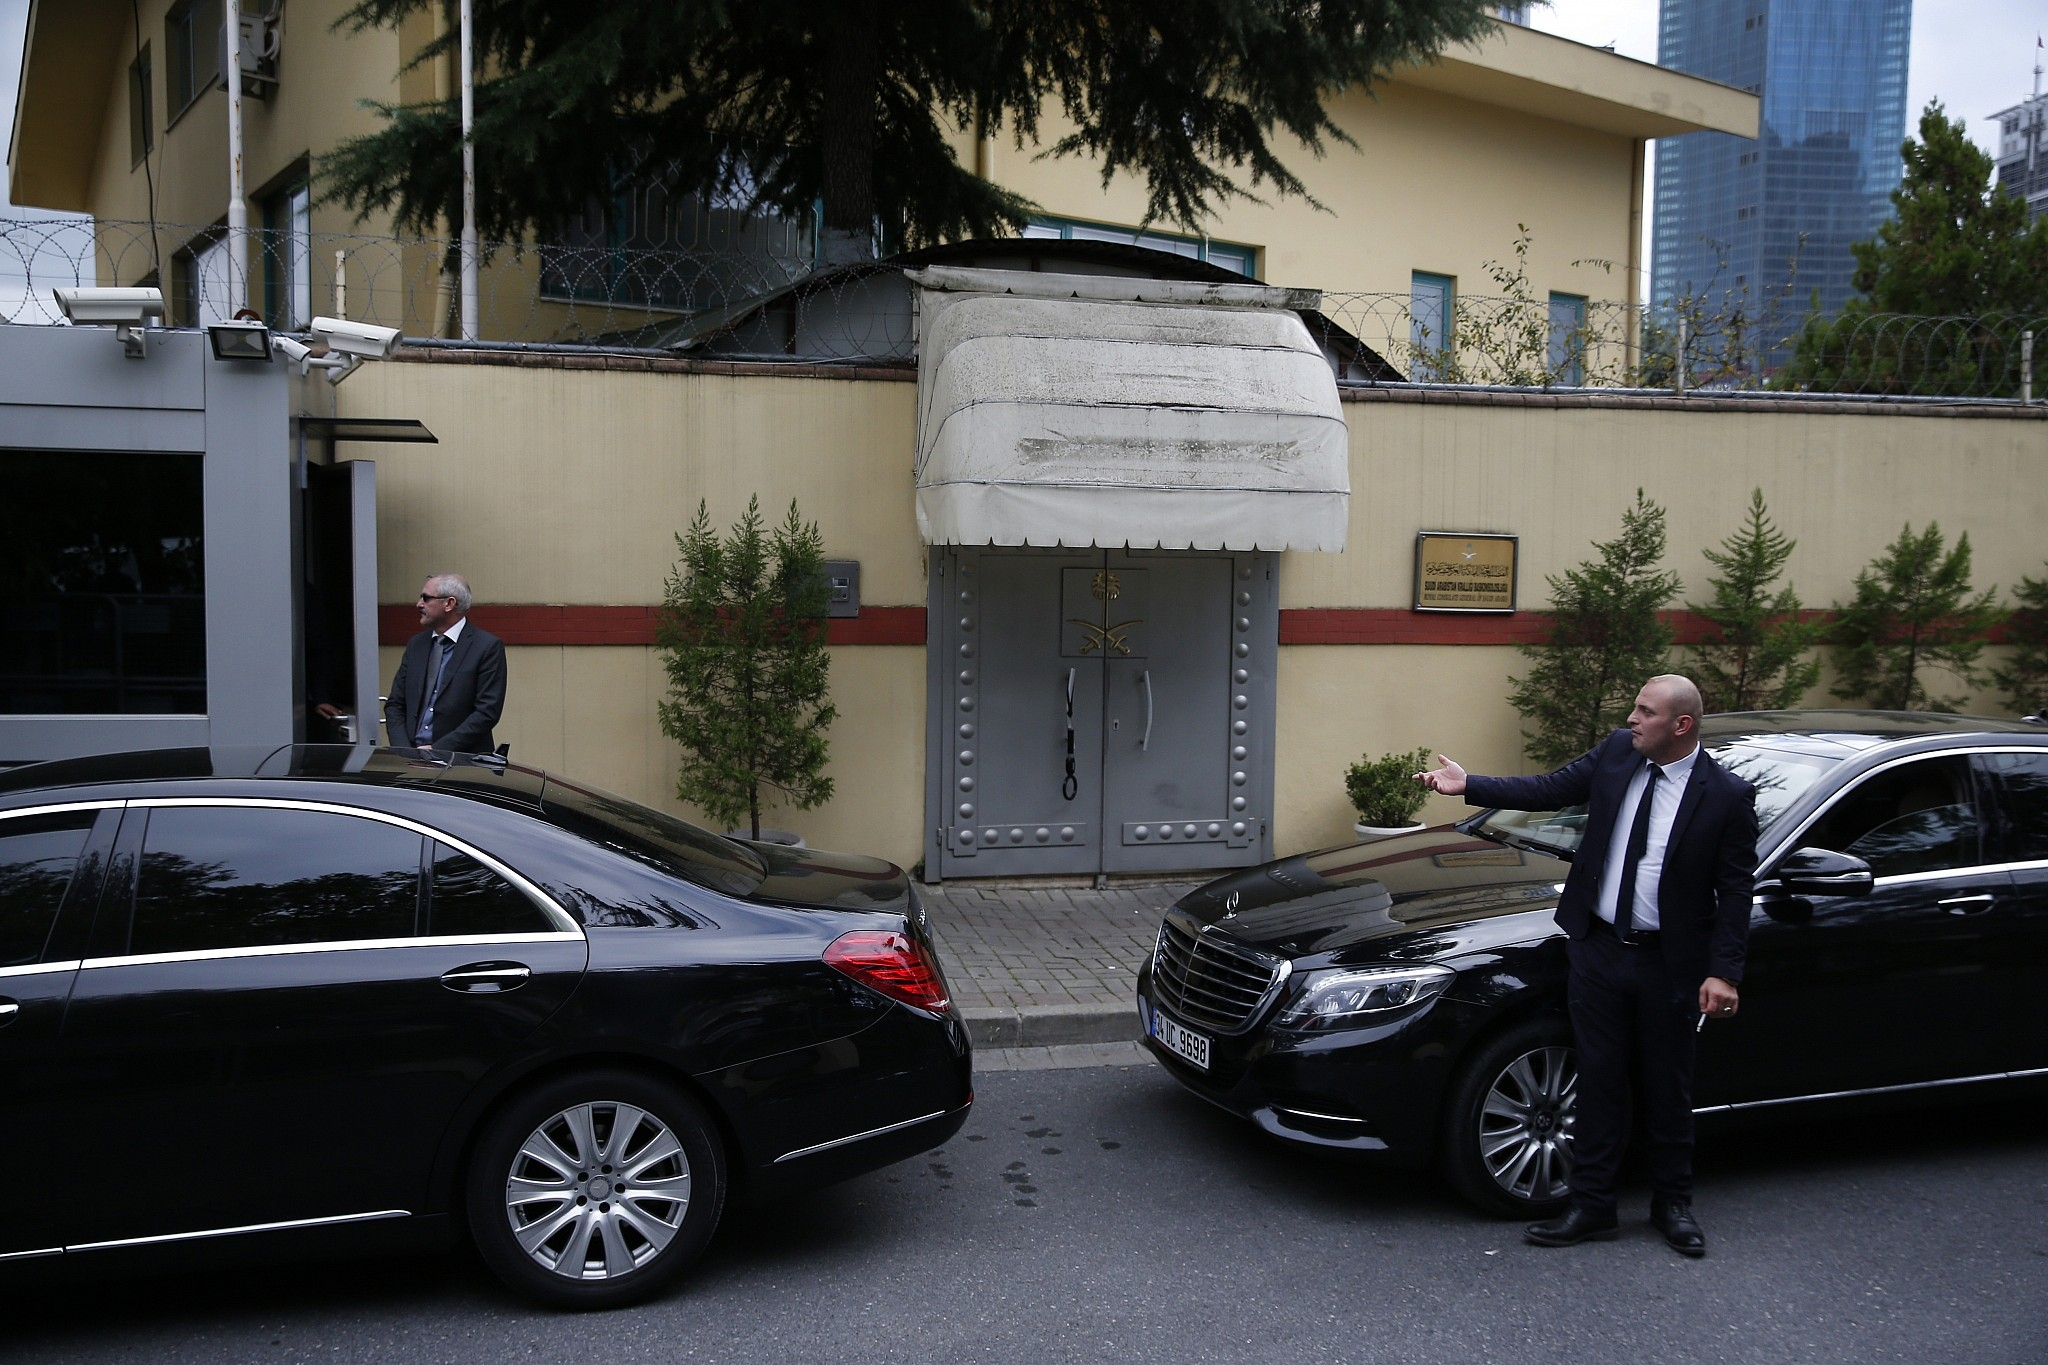 Order for Khashoggi's murder came from the top say Turkish officials